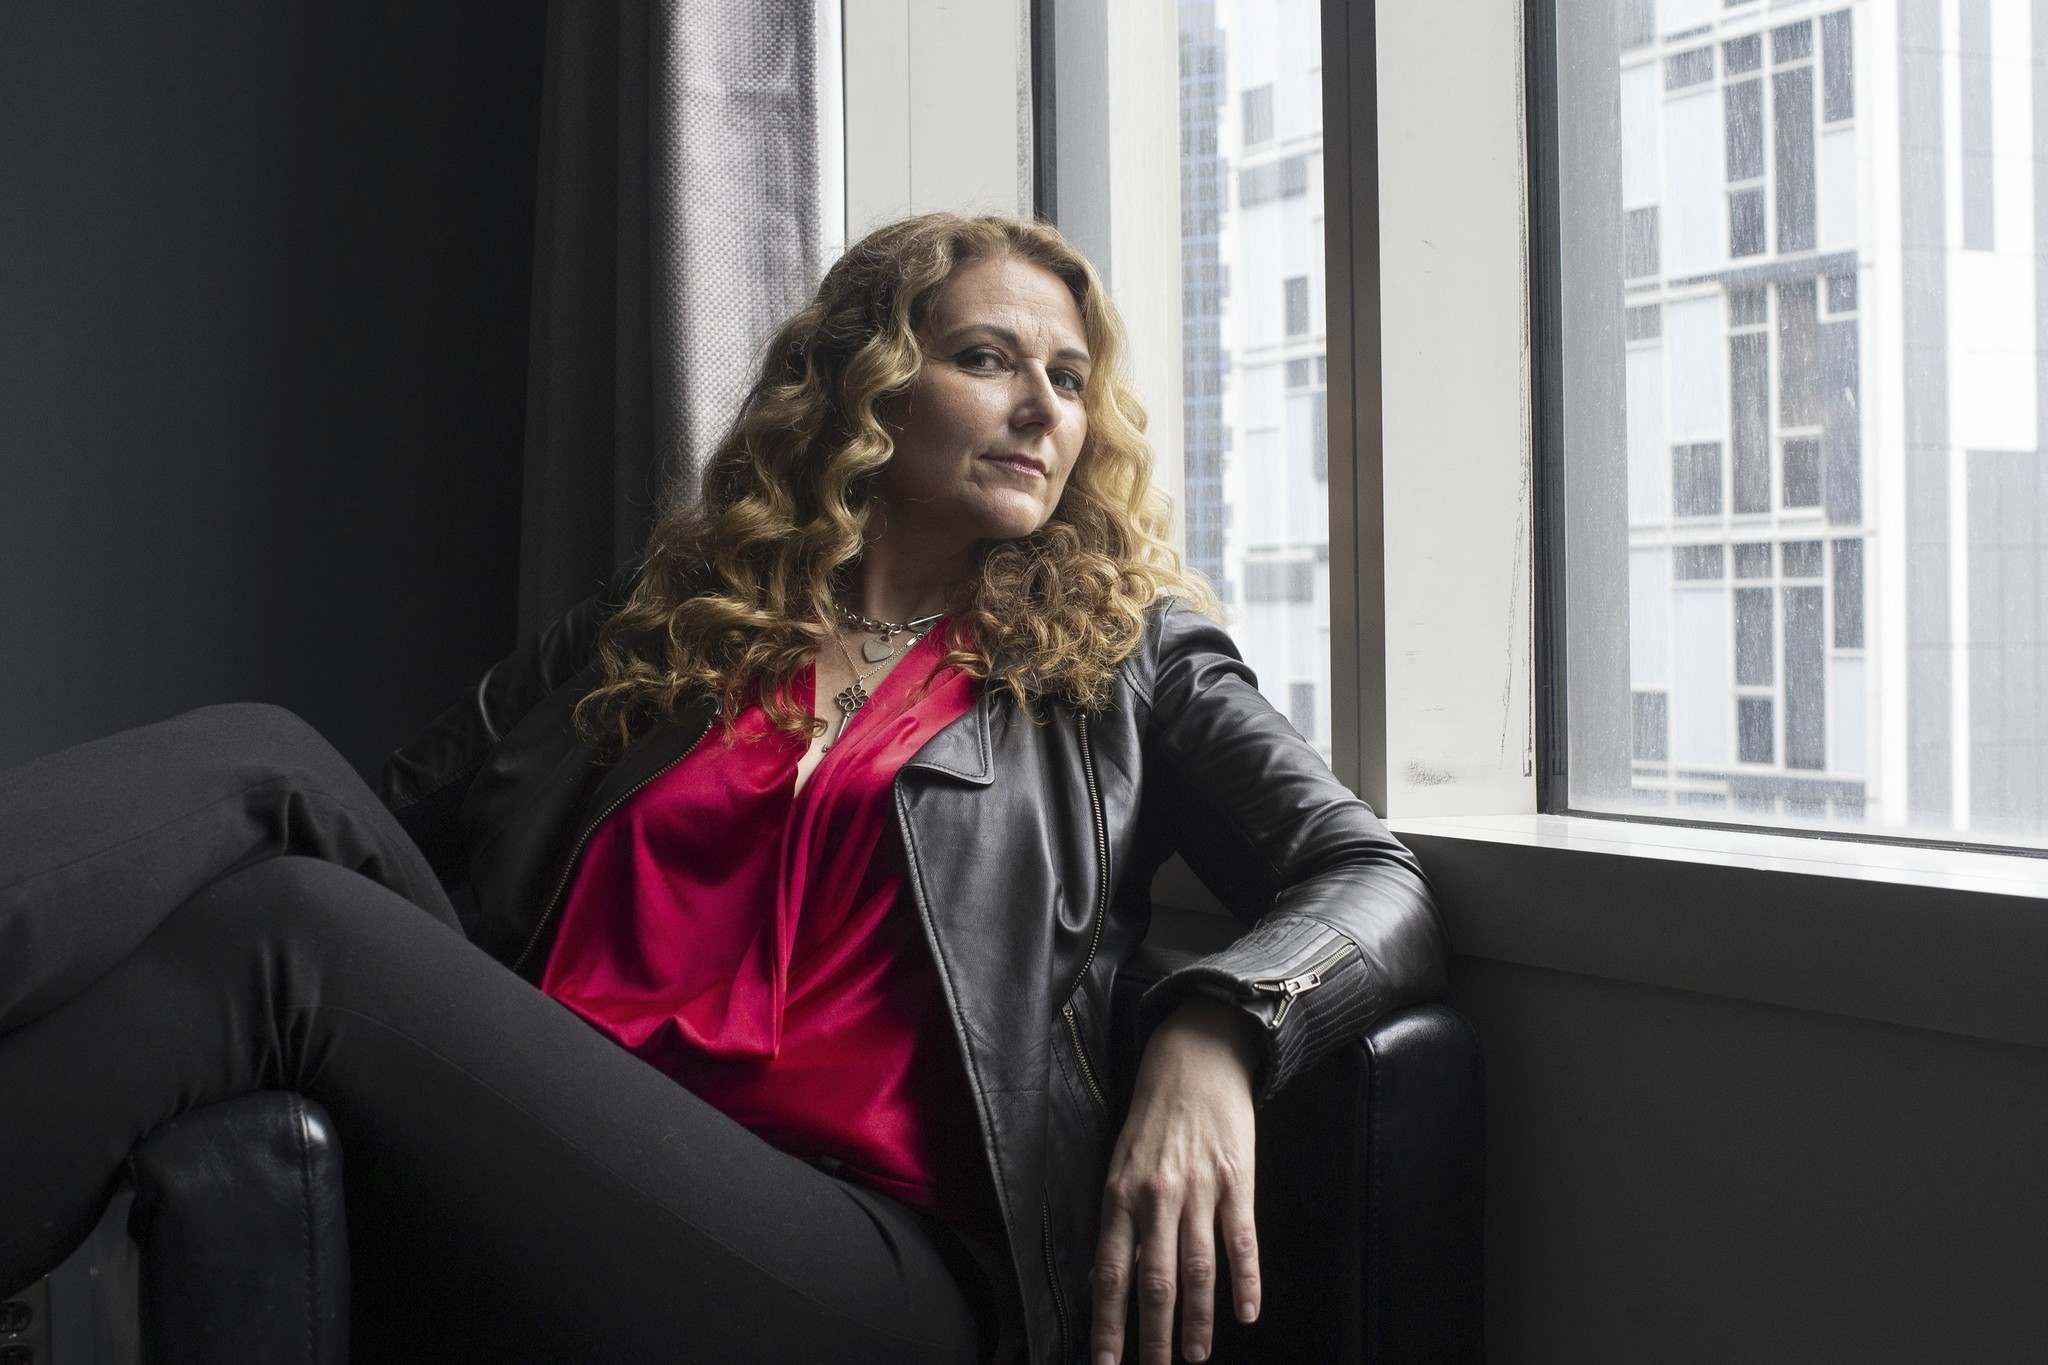 Dr. Jen Gunter is known for her insightful takes on vaginal health, abortion restrictions and some of the more controversial wellness trends backed by celebrities such as Gwyneth Paltrow. (Chris Young / The Canadian Press files)